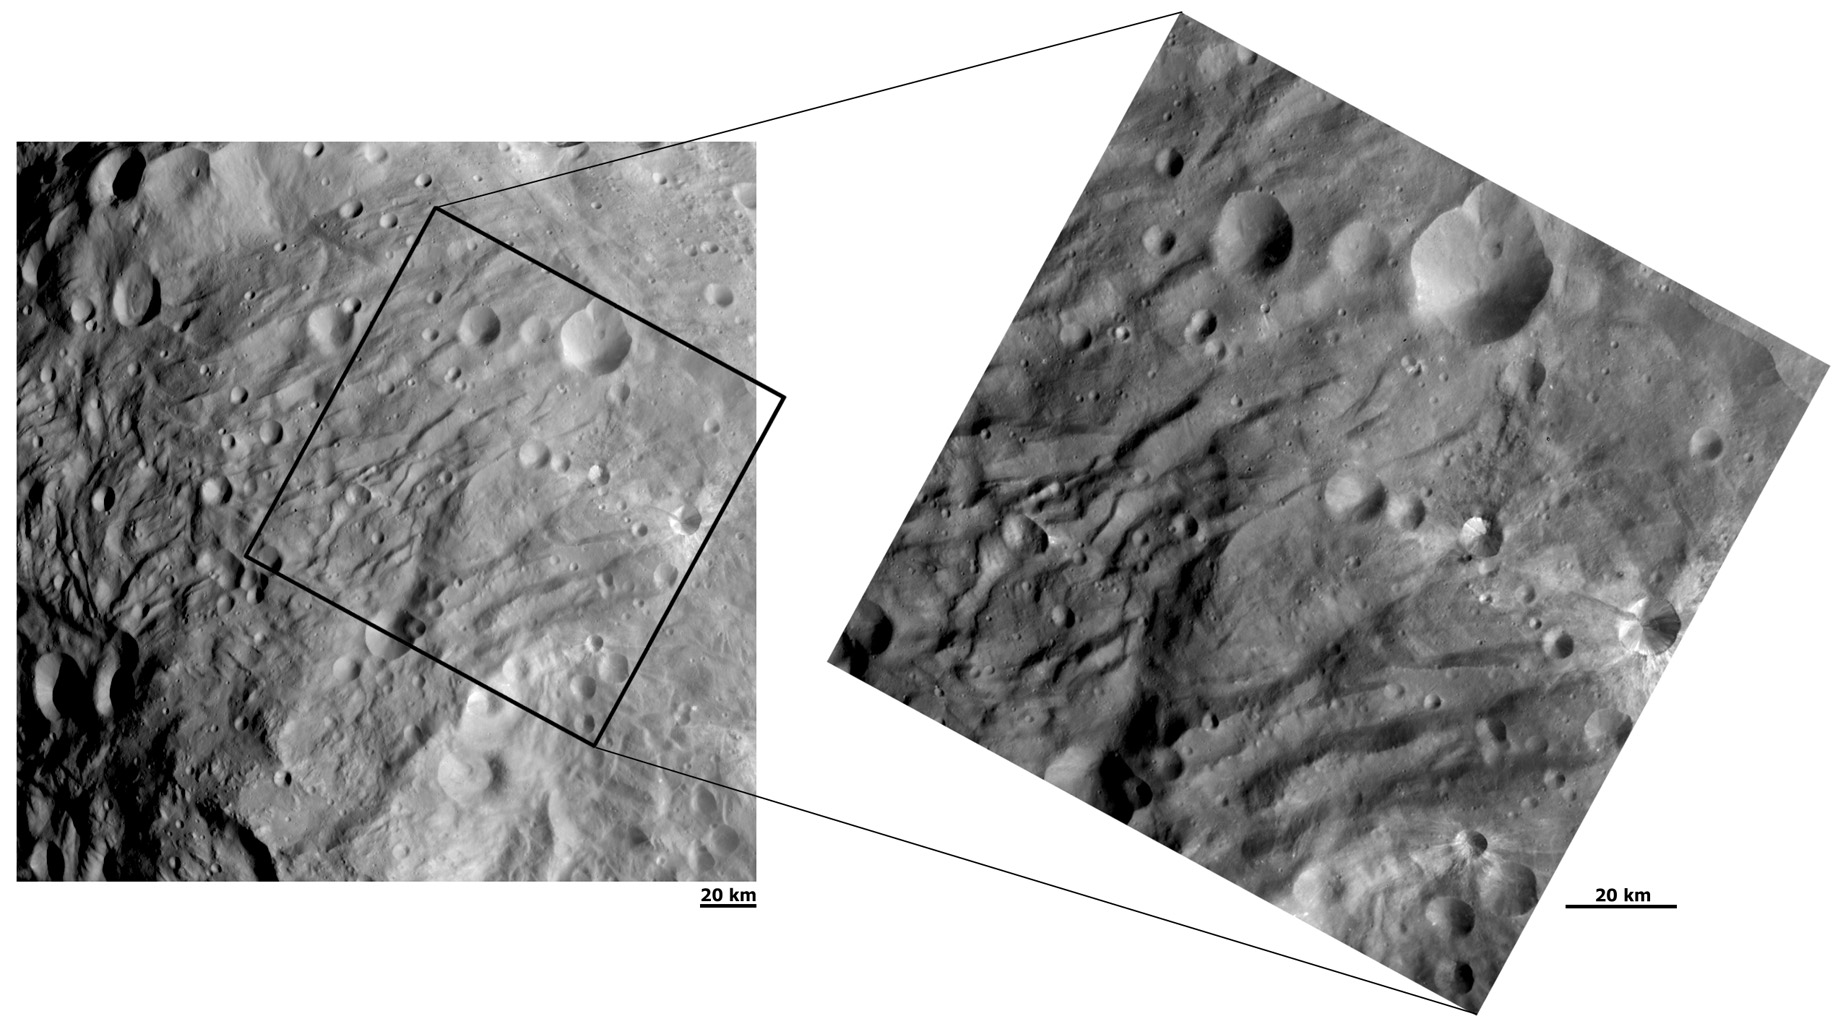 NASA's Dawn spacecraft obtained these images of asteroid Vesta on Aug. 28 (left) and Sept. 9, 2011. These images of the south polar region were taken at a distance of 1,700 miles (2,740 kilometers) with a resolution of about 260 and 130 meters per pixel.